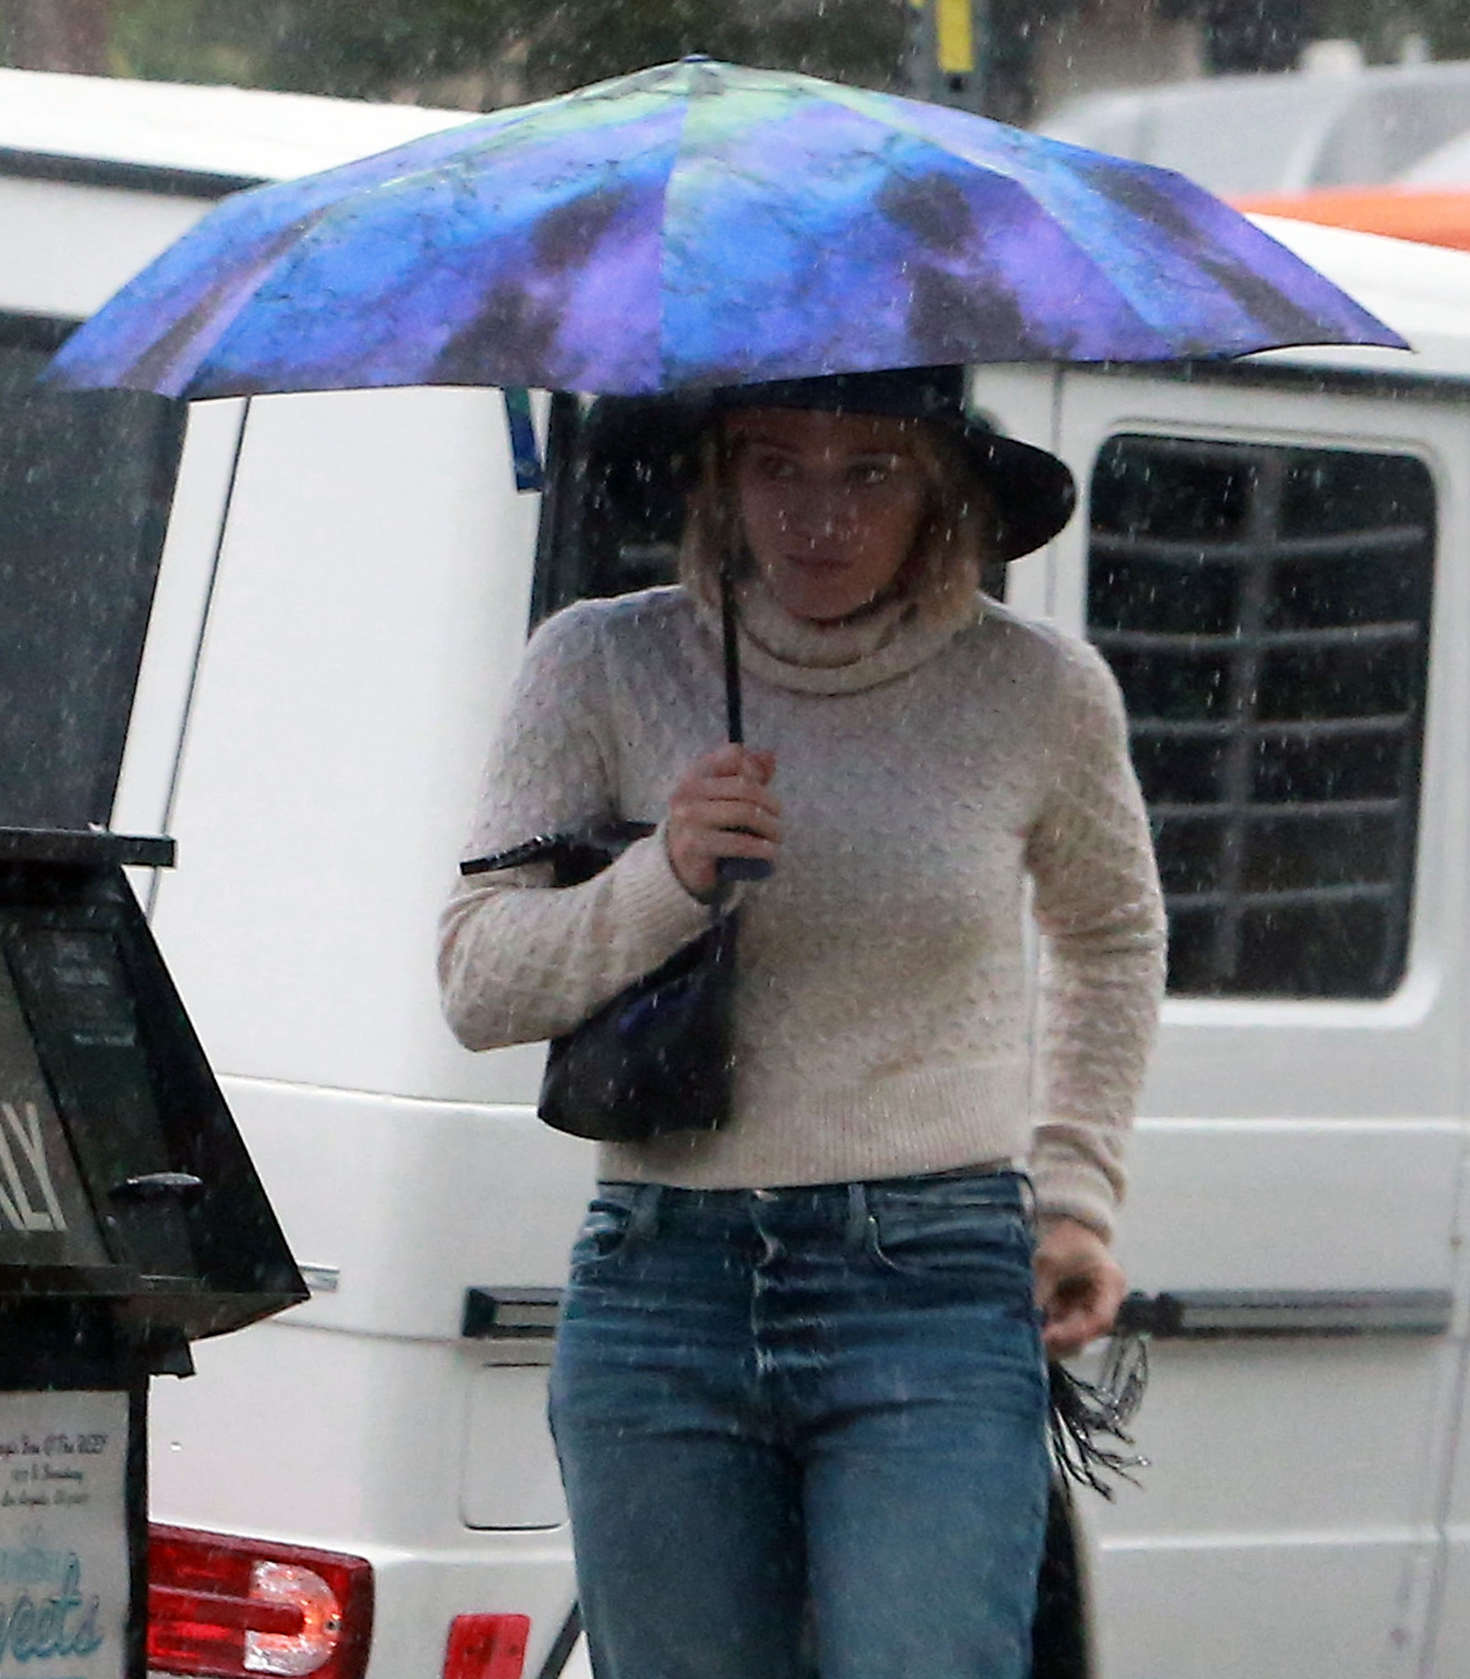 Hilary Duff 2016 : Hilary Duff in Jeans out on a rainy day -05